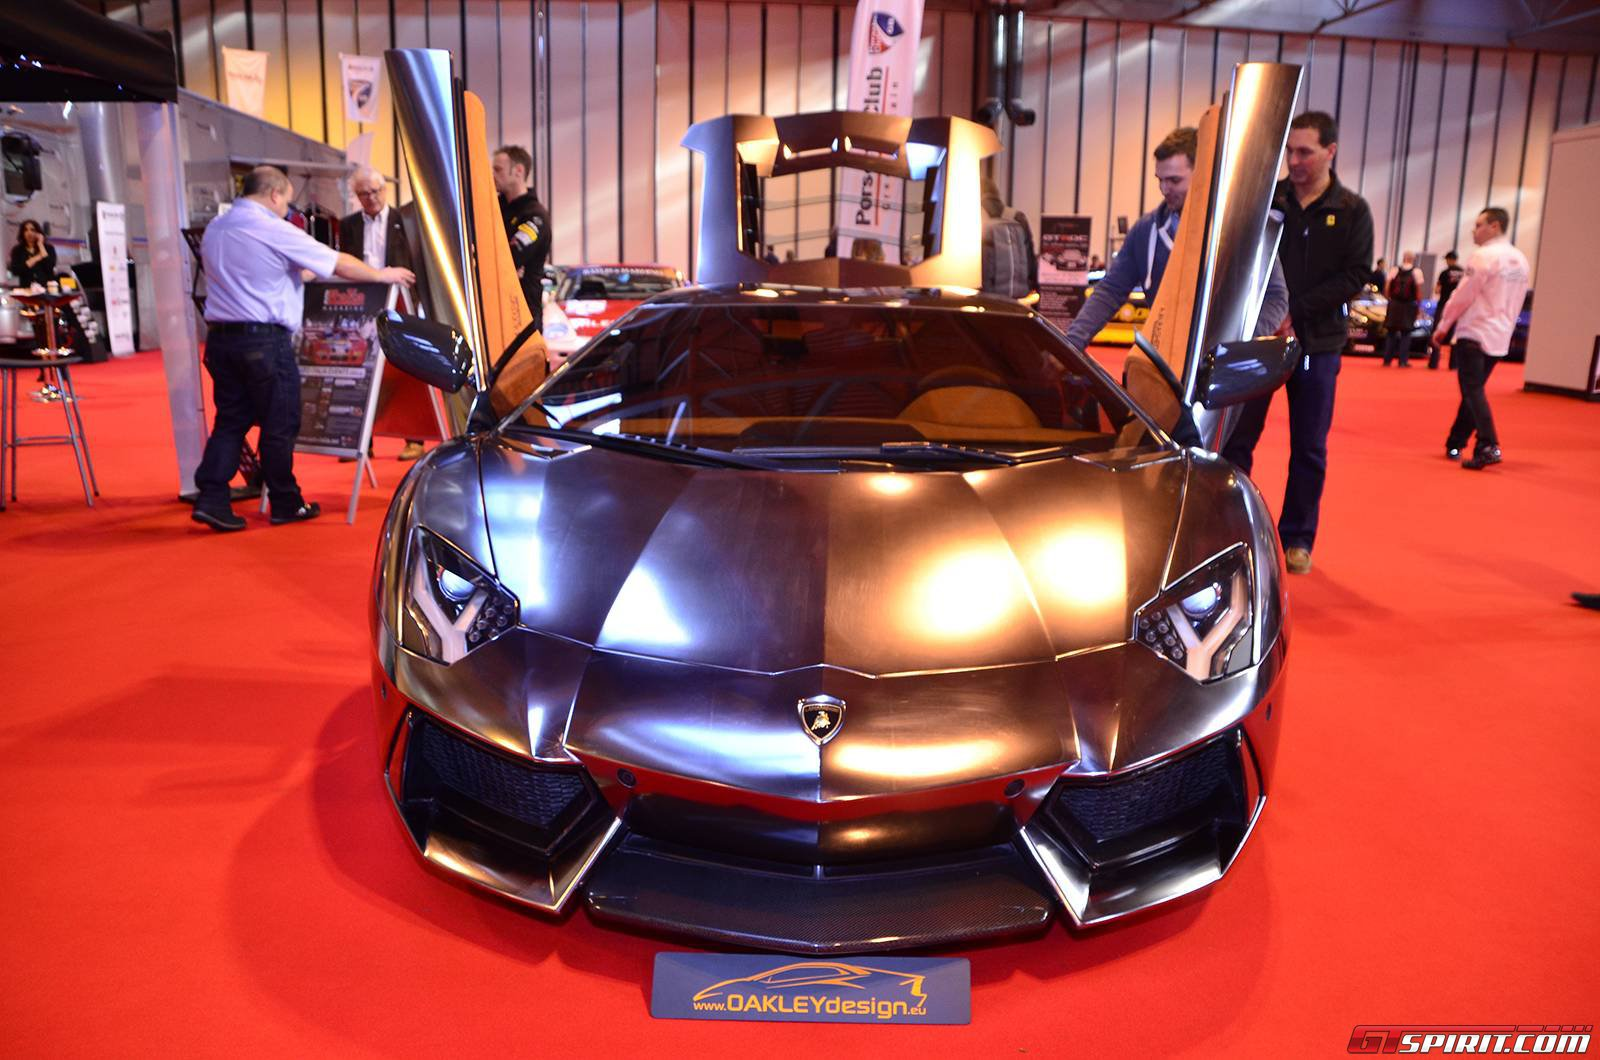 oakley design k4w0  If you're looking for an upgrade to your Lamborghini Aventador, then look  no further than the team at Oakley Design which are currently displaying  their